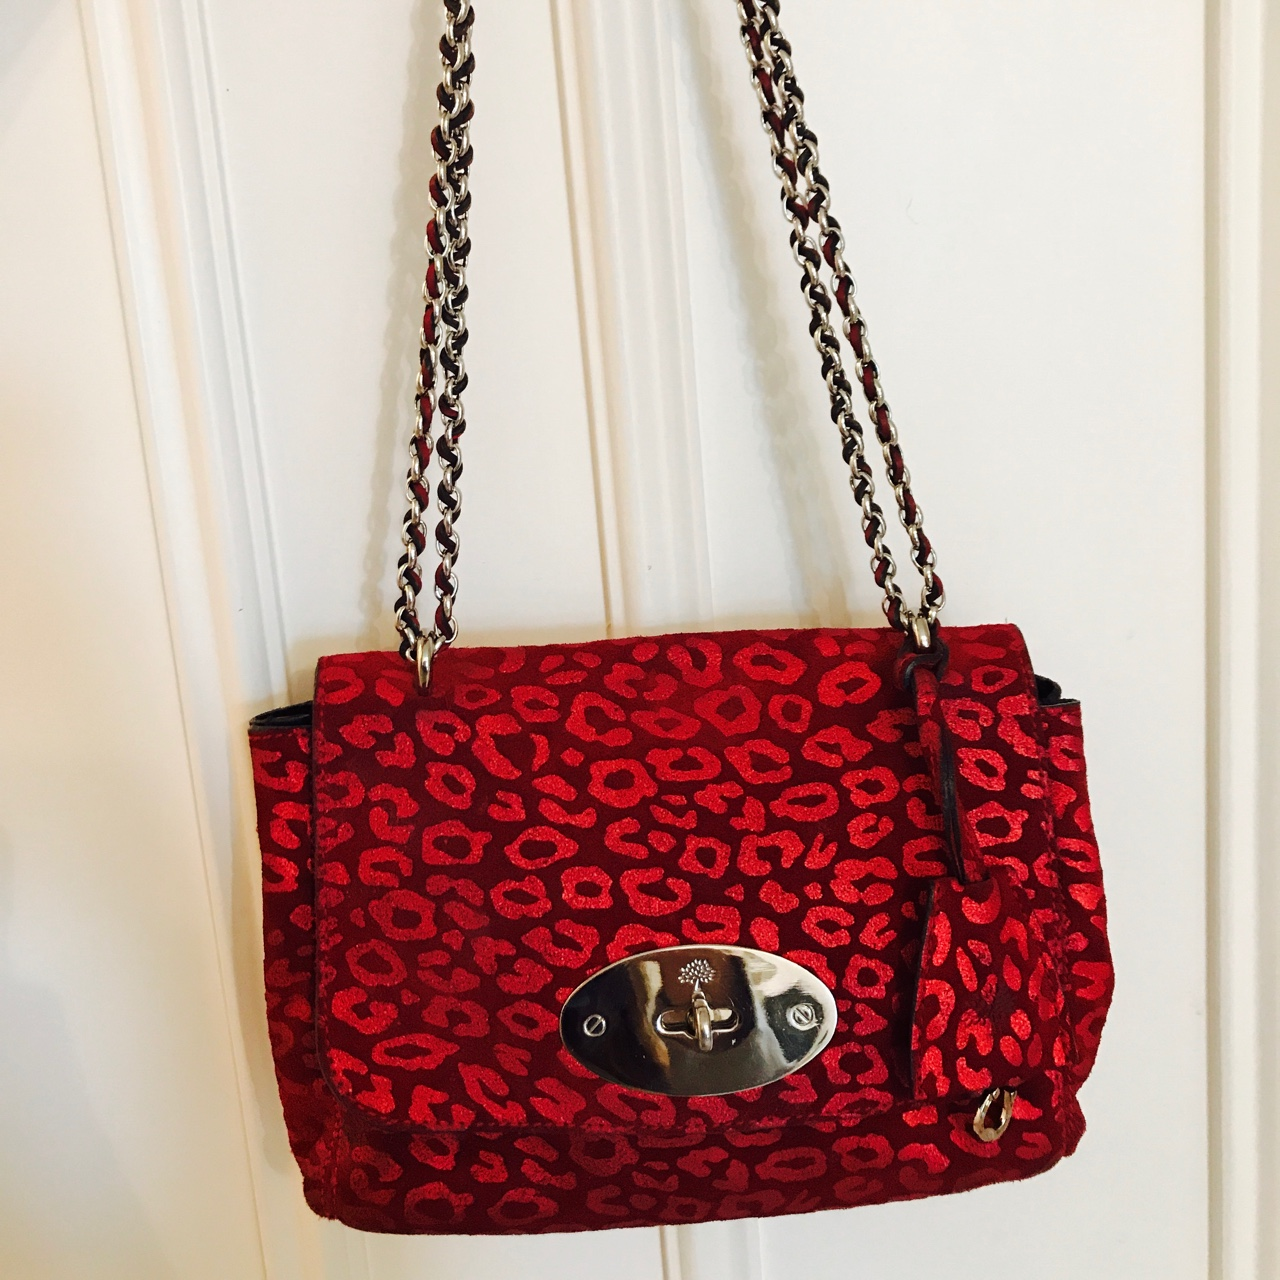 3ca72ecf29f2 PRICE REDUCTION** Mulberry Lily bag in red leopard print. - Depop